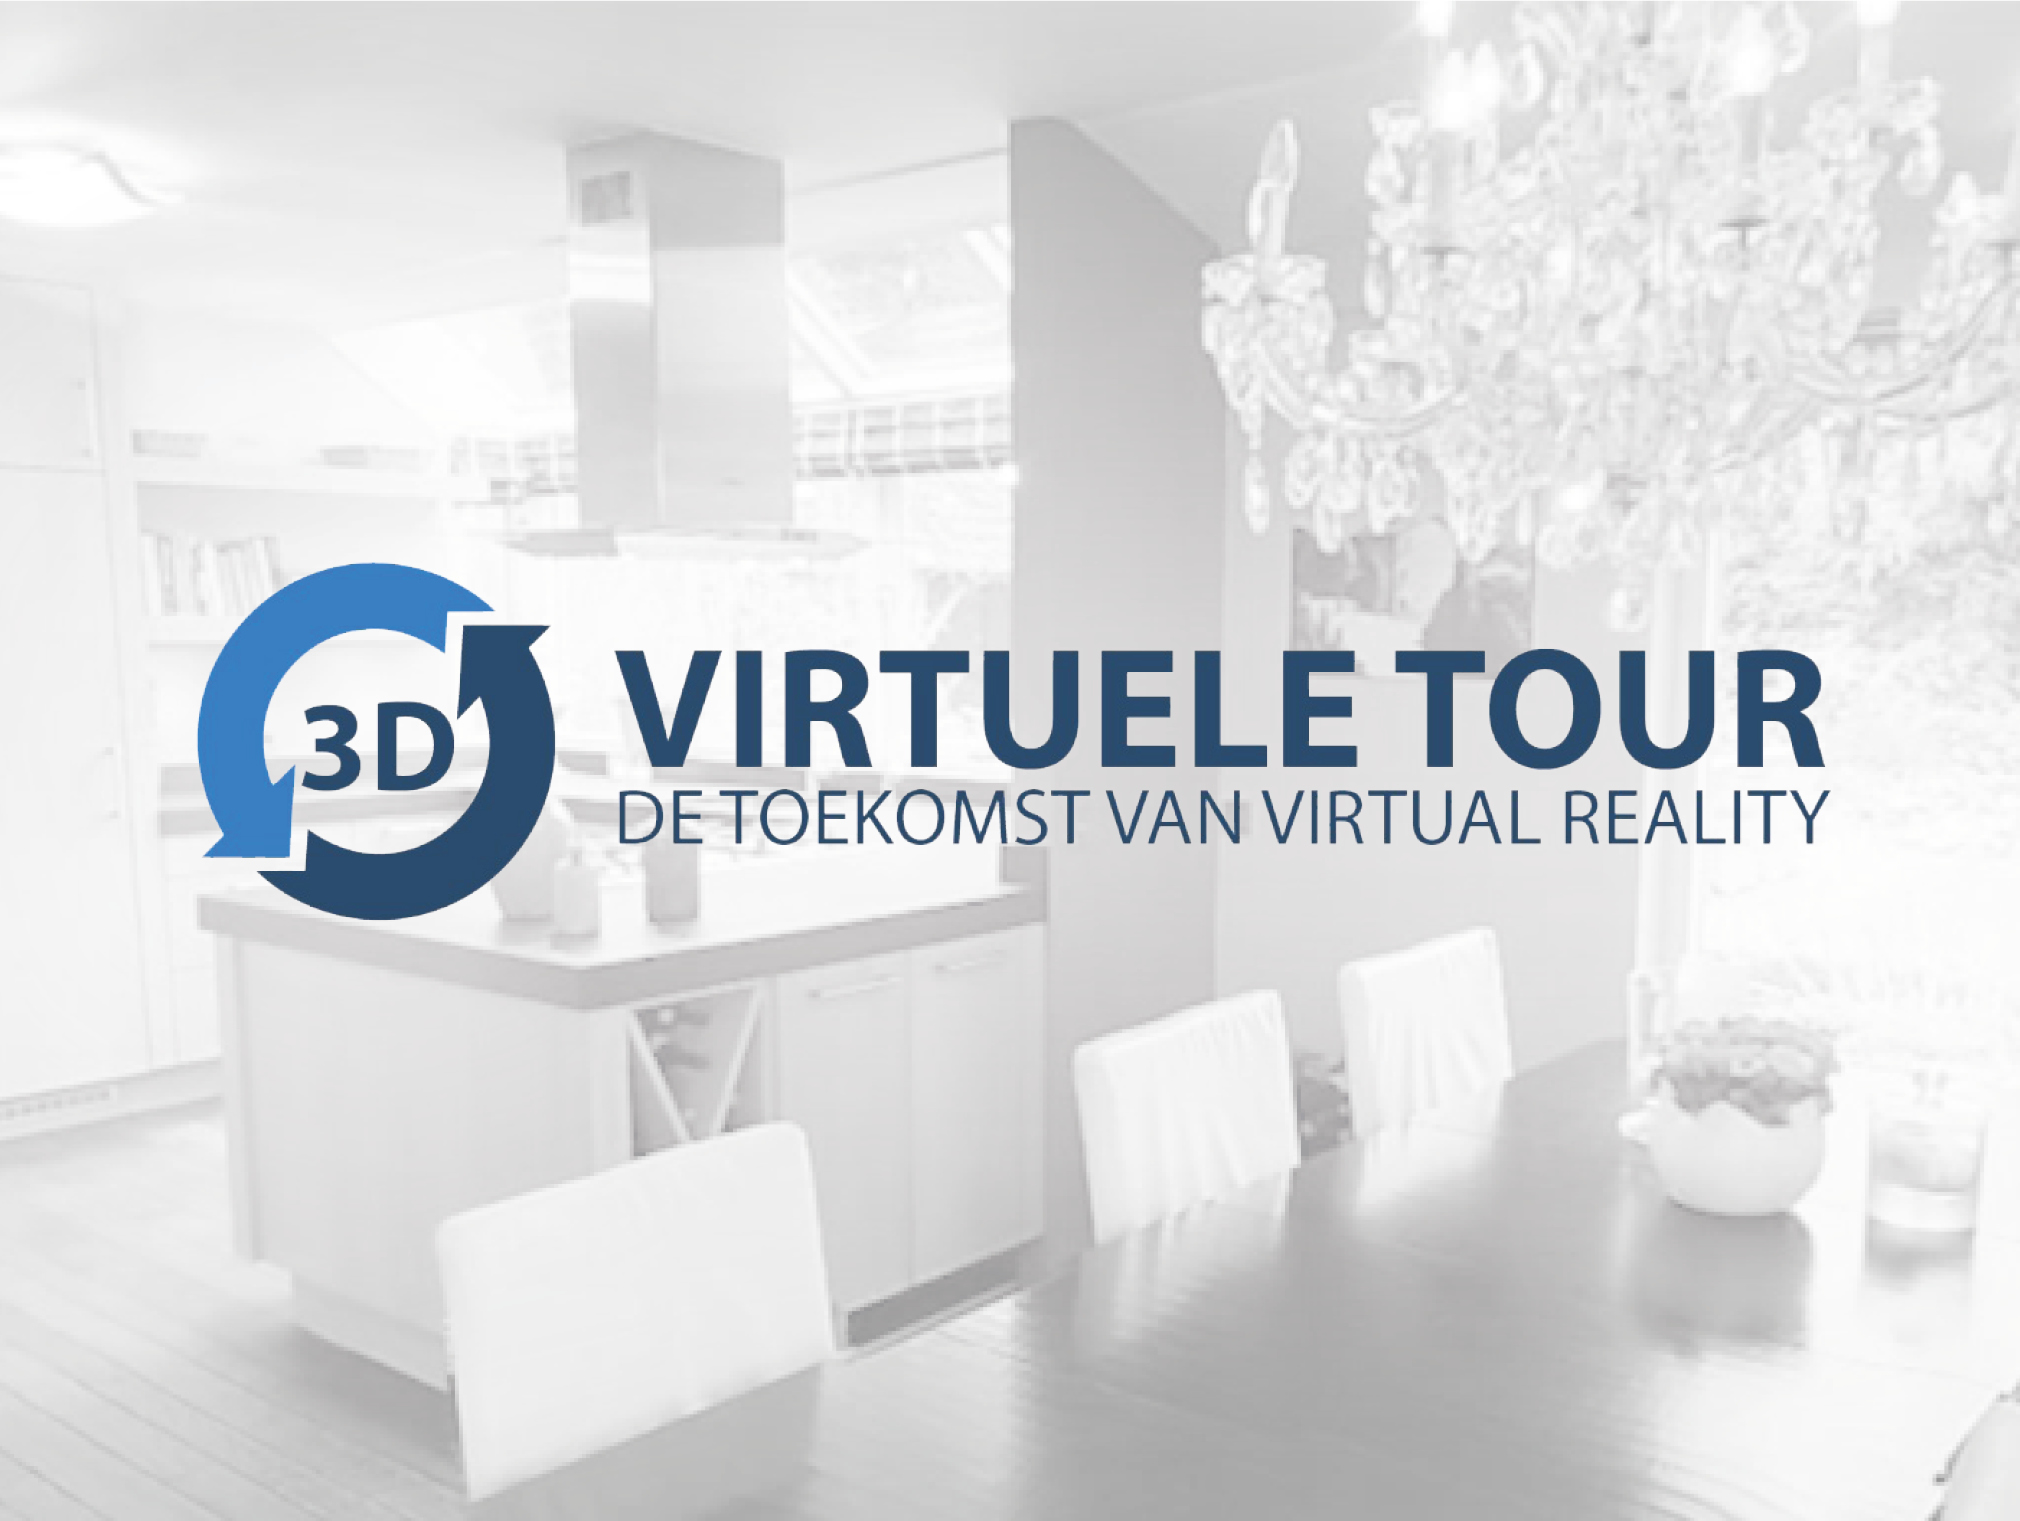 3D Virtuele Tour